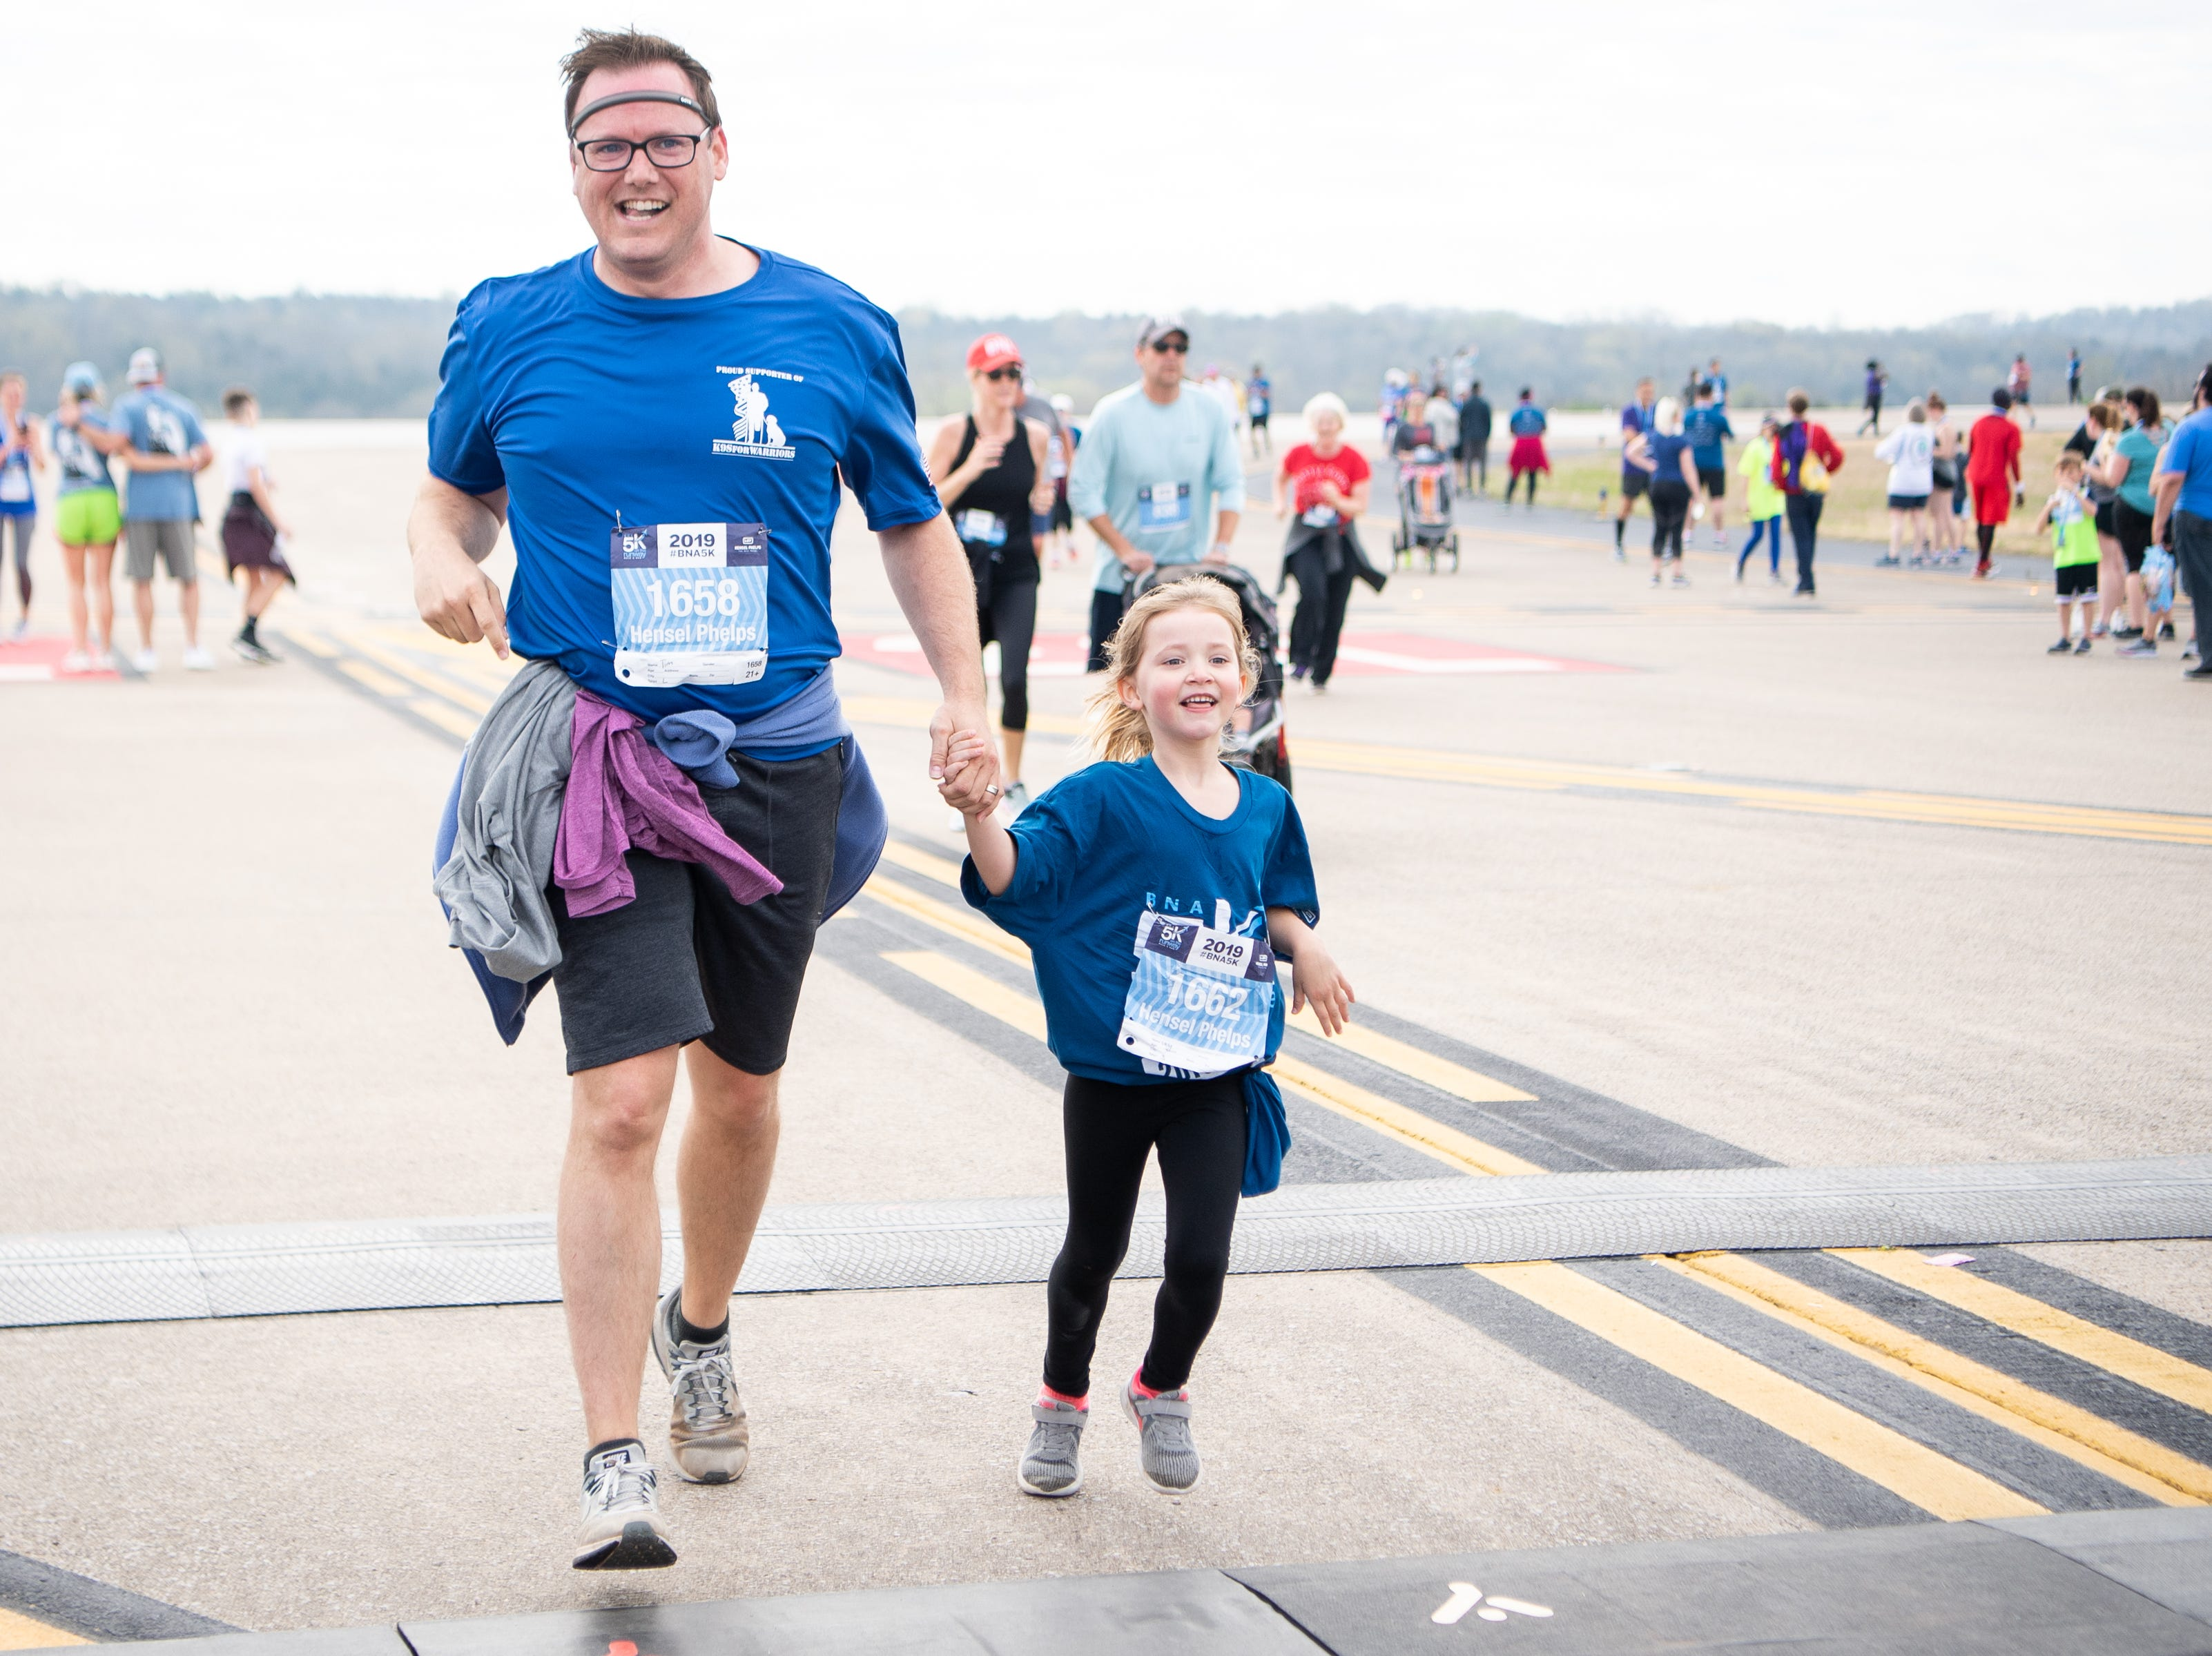 Lucy Davis, 5, runs across the finish line with her father, Tim Davis, during the BNA 5K on the Runway at Nashville International Airport on Runway 2R/20L Saturday, April 6, 2019, in Nashville, Tenn.